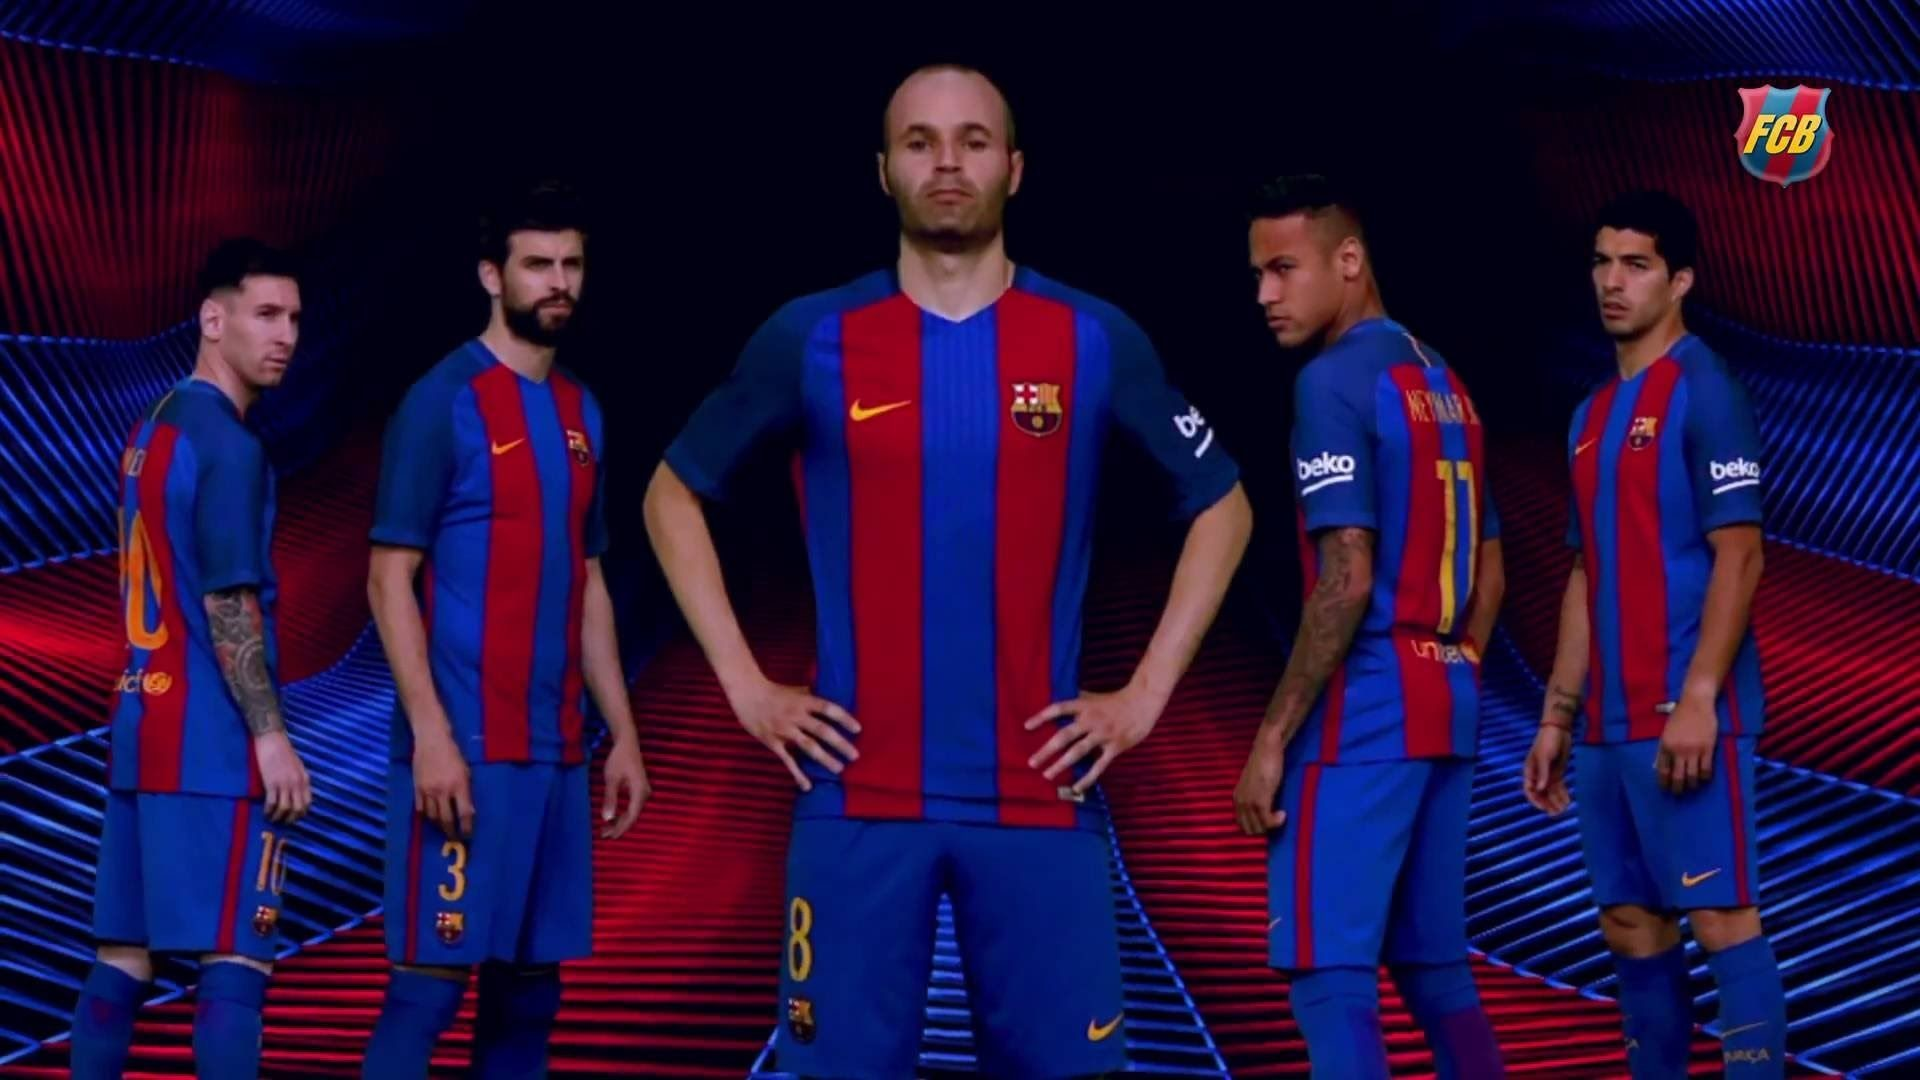 Barcelona hd wallpapers 2018 73 images hd 2017 sgf5 fc barcelona wallpapers 2017 5 voltagebd Gallery